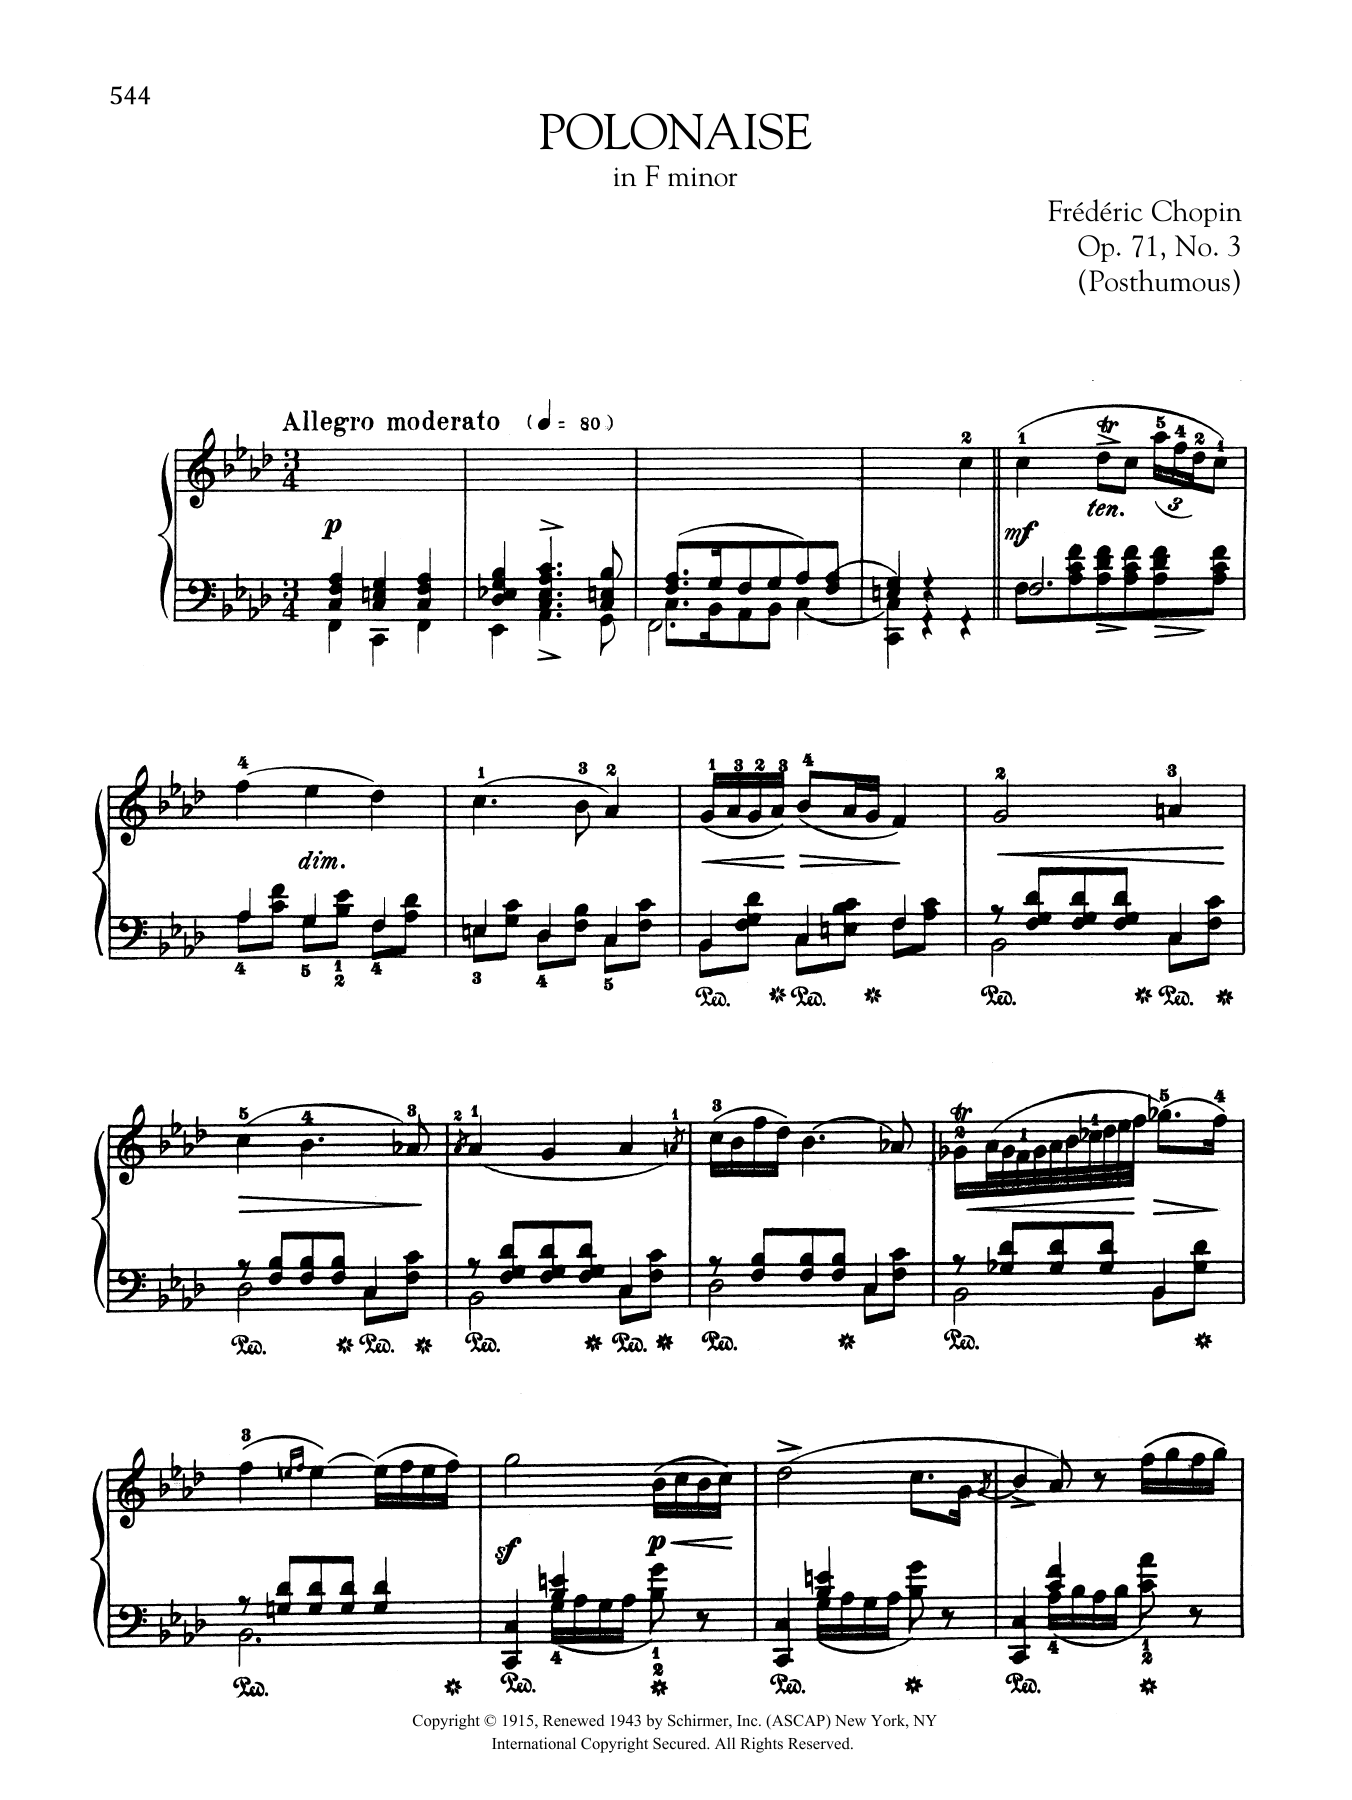 Polonaise in F minor, Op. 71, No. 3 (Posthumous) Sheet Music